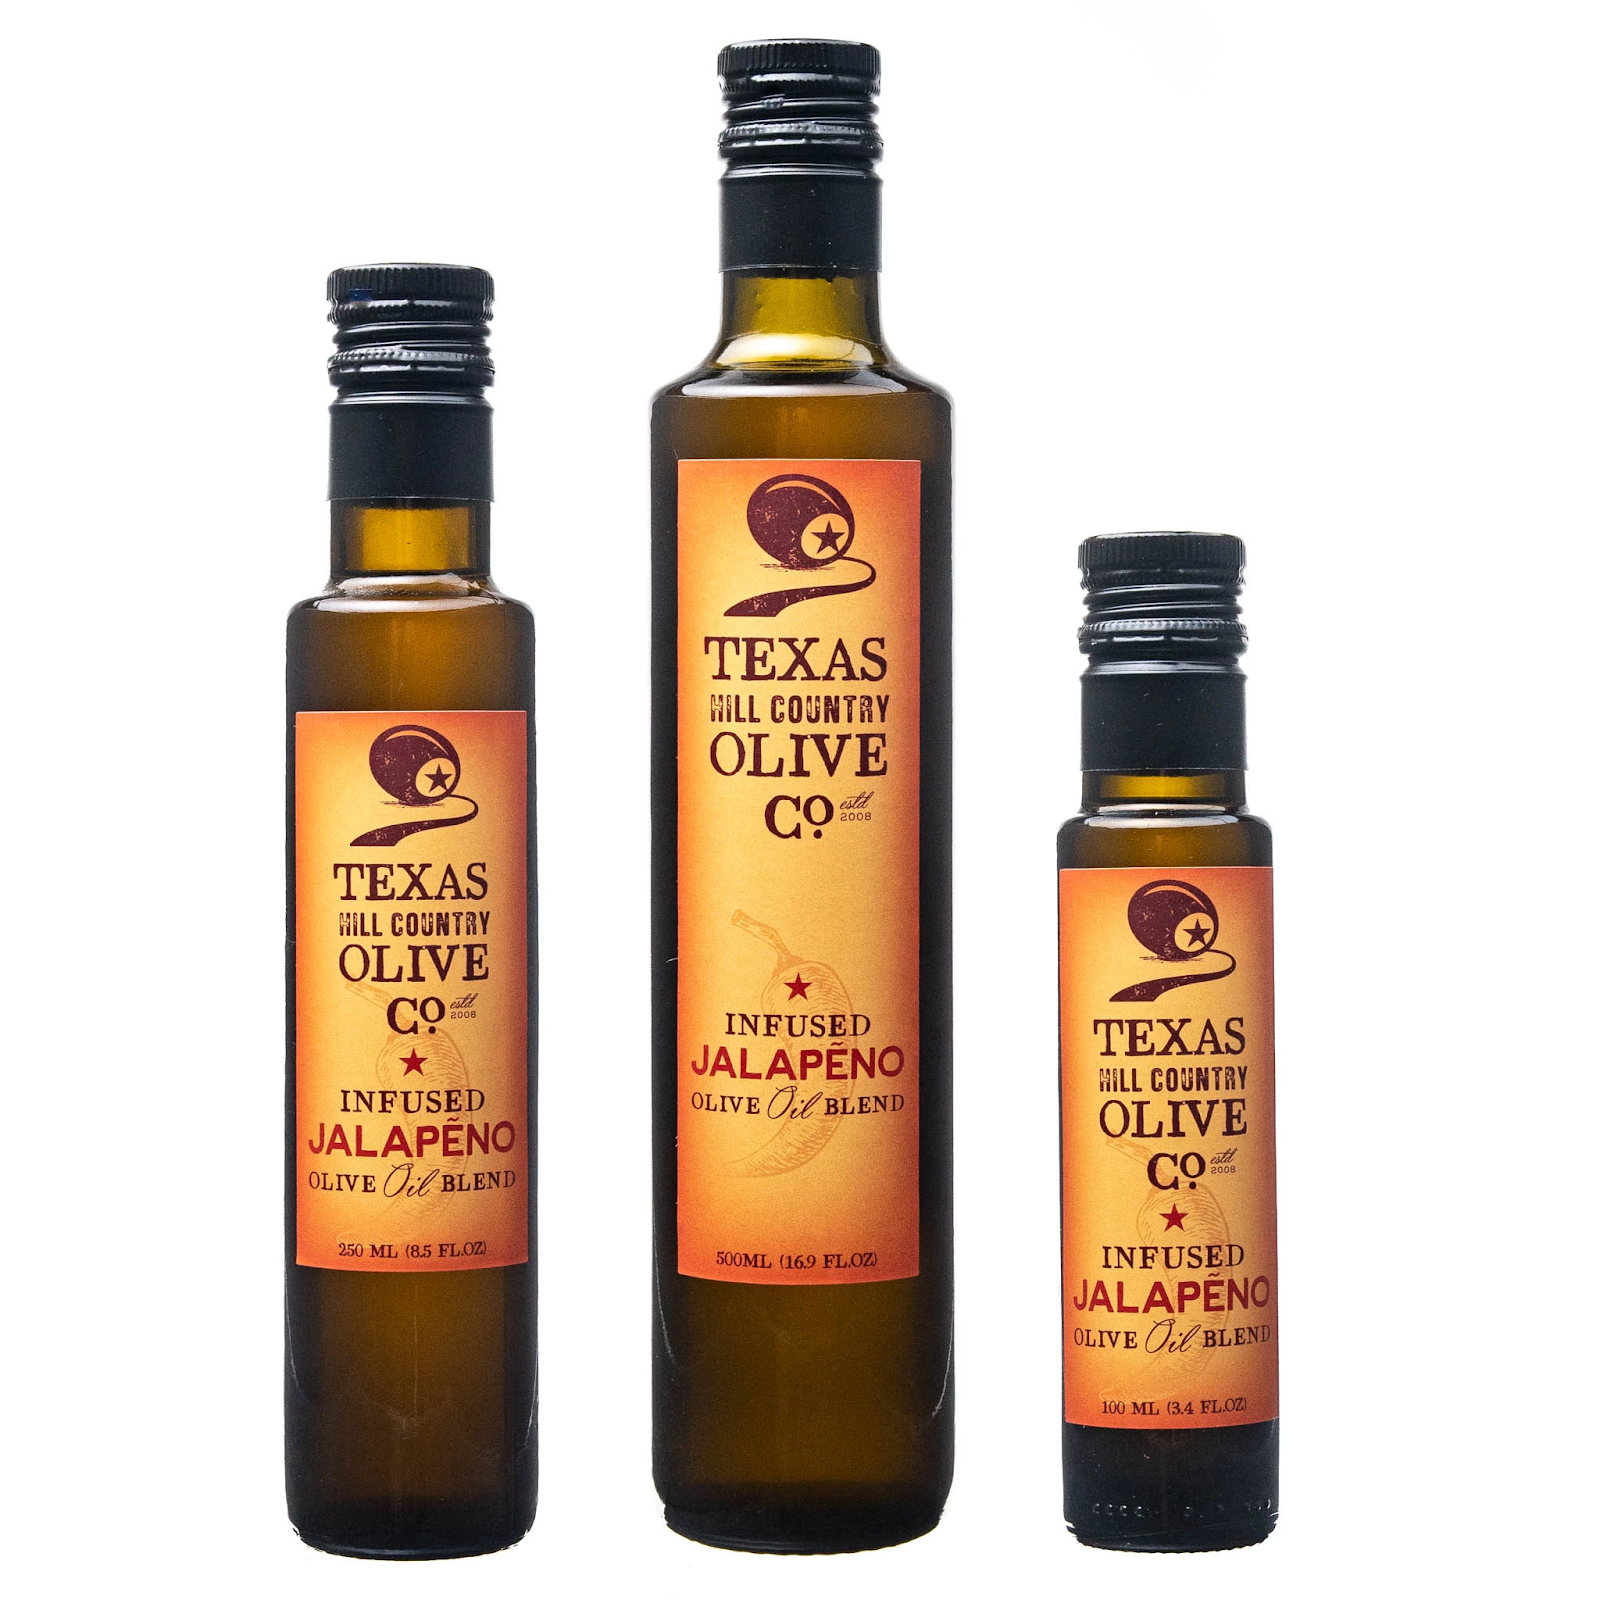 Jalapeño Infused Texas Olive Oil